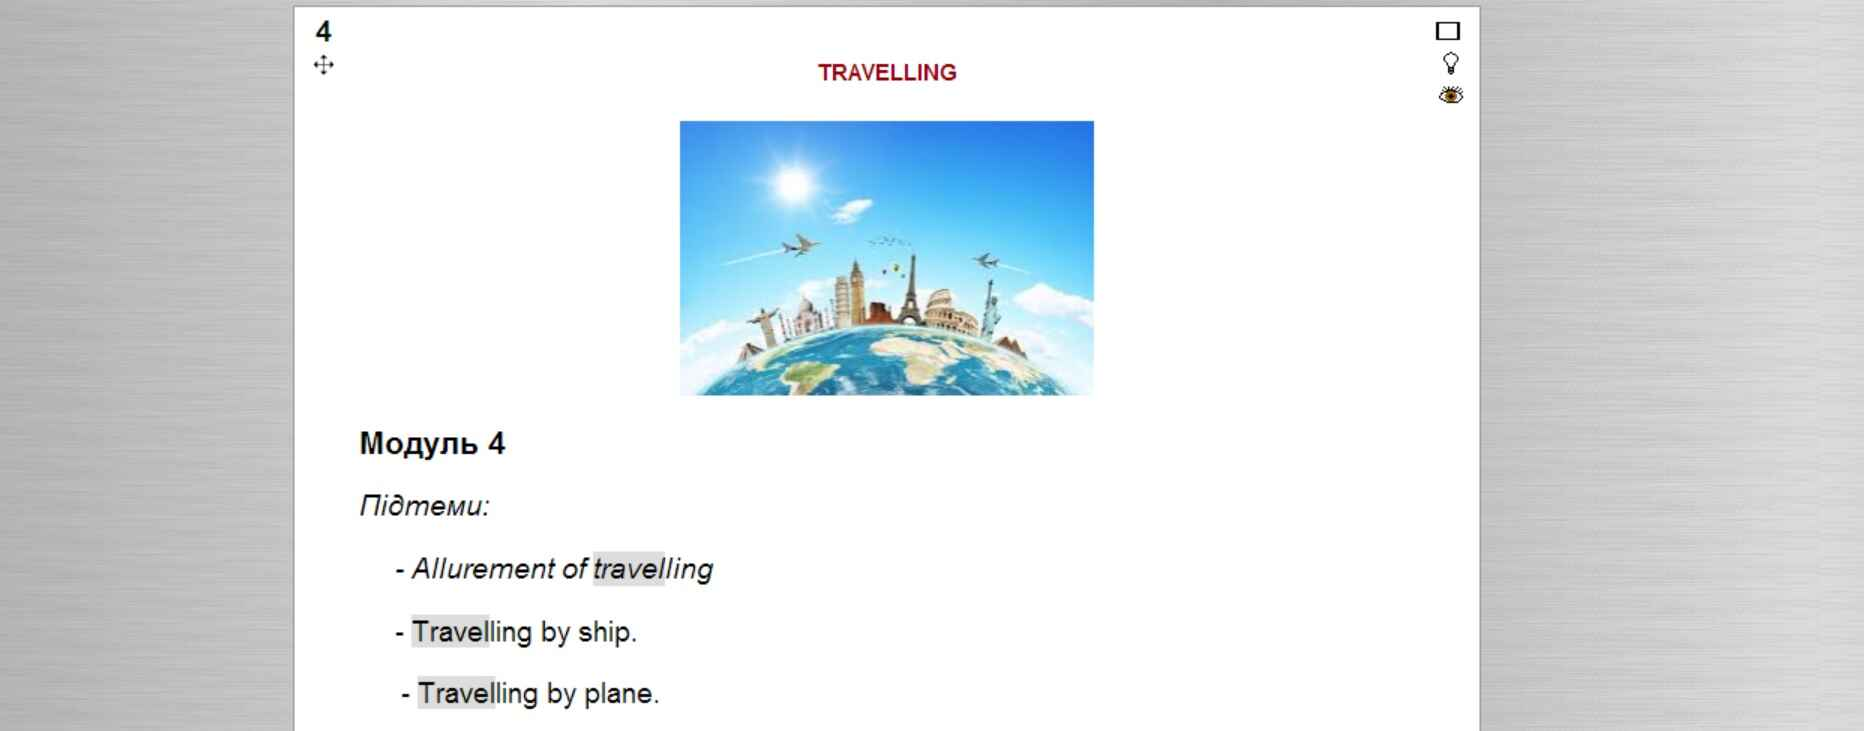 travelling-moodle